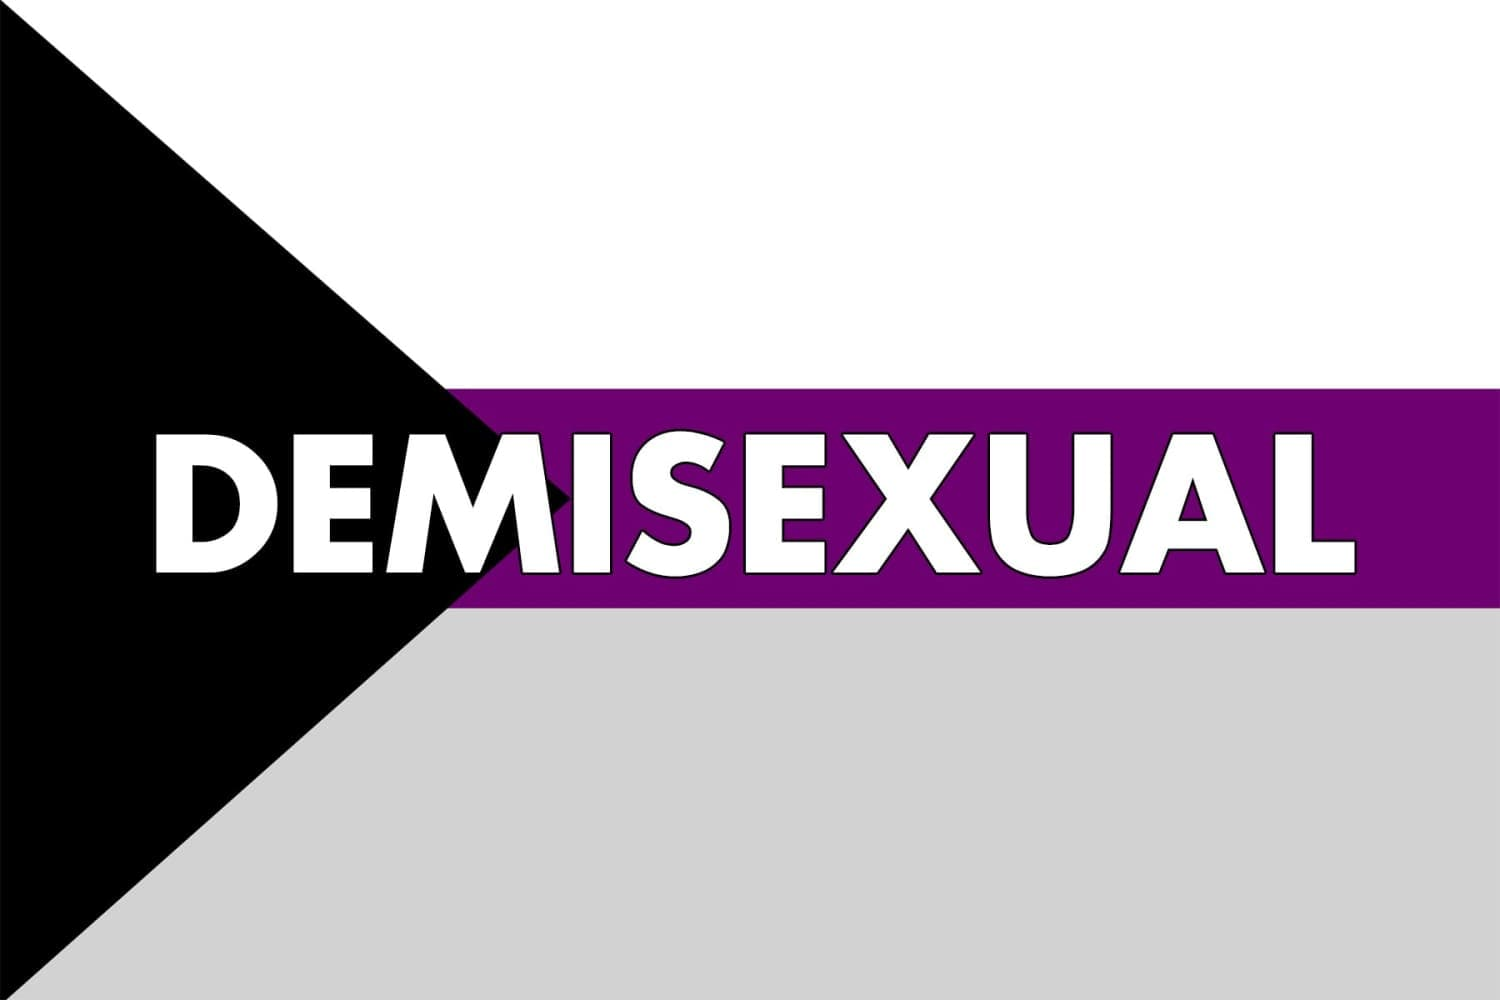 Demisexual Definition | Demisexual Pride Flag